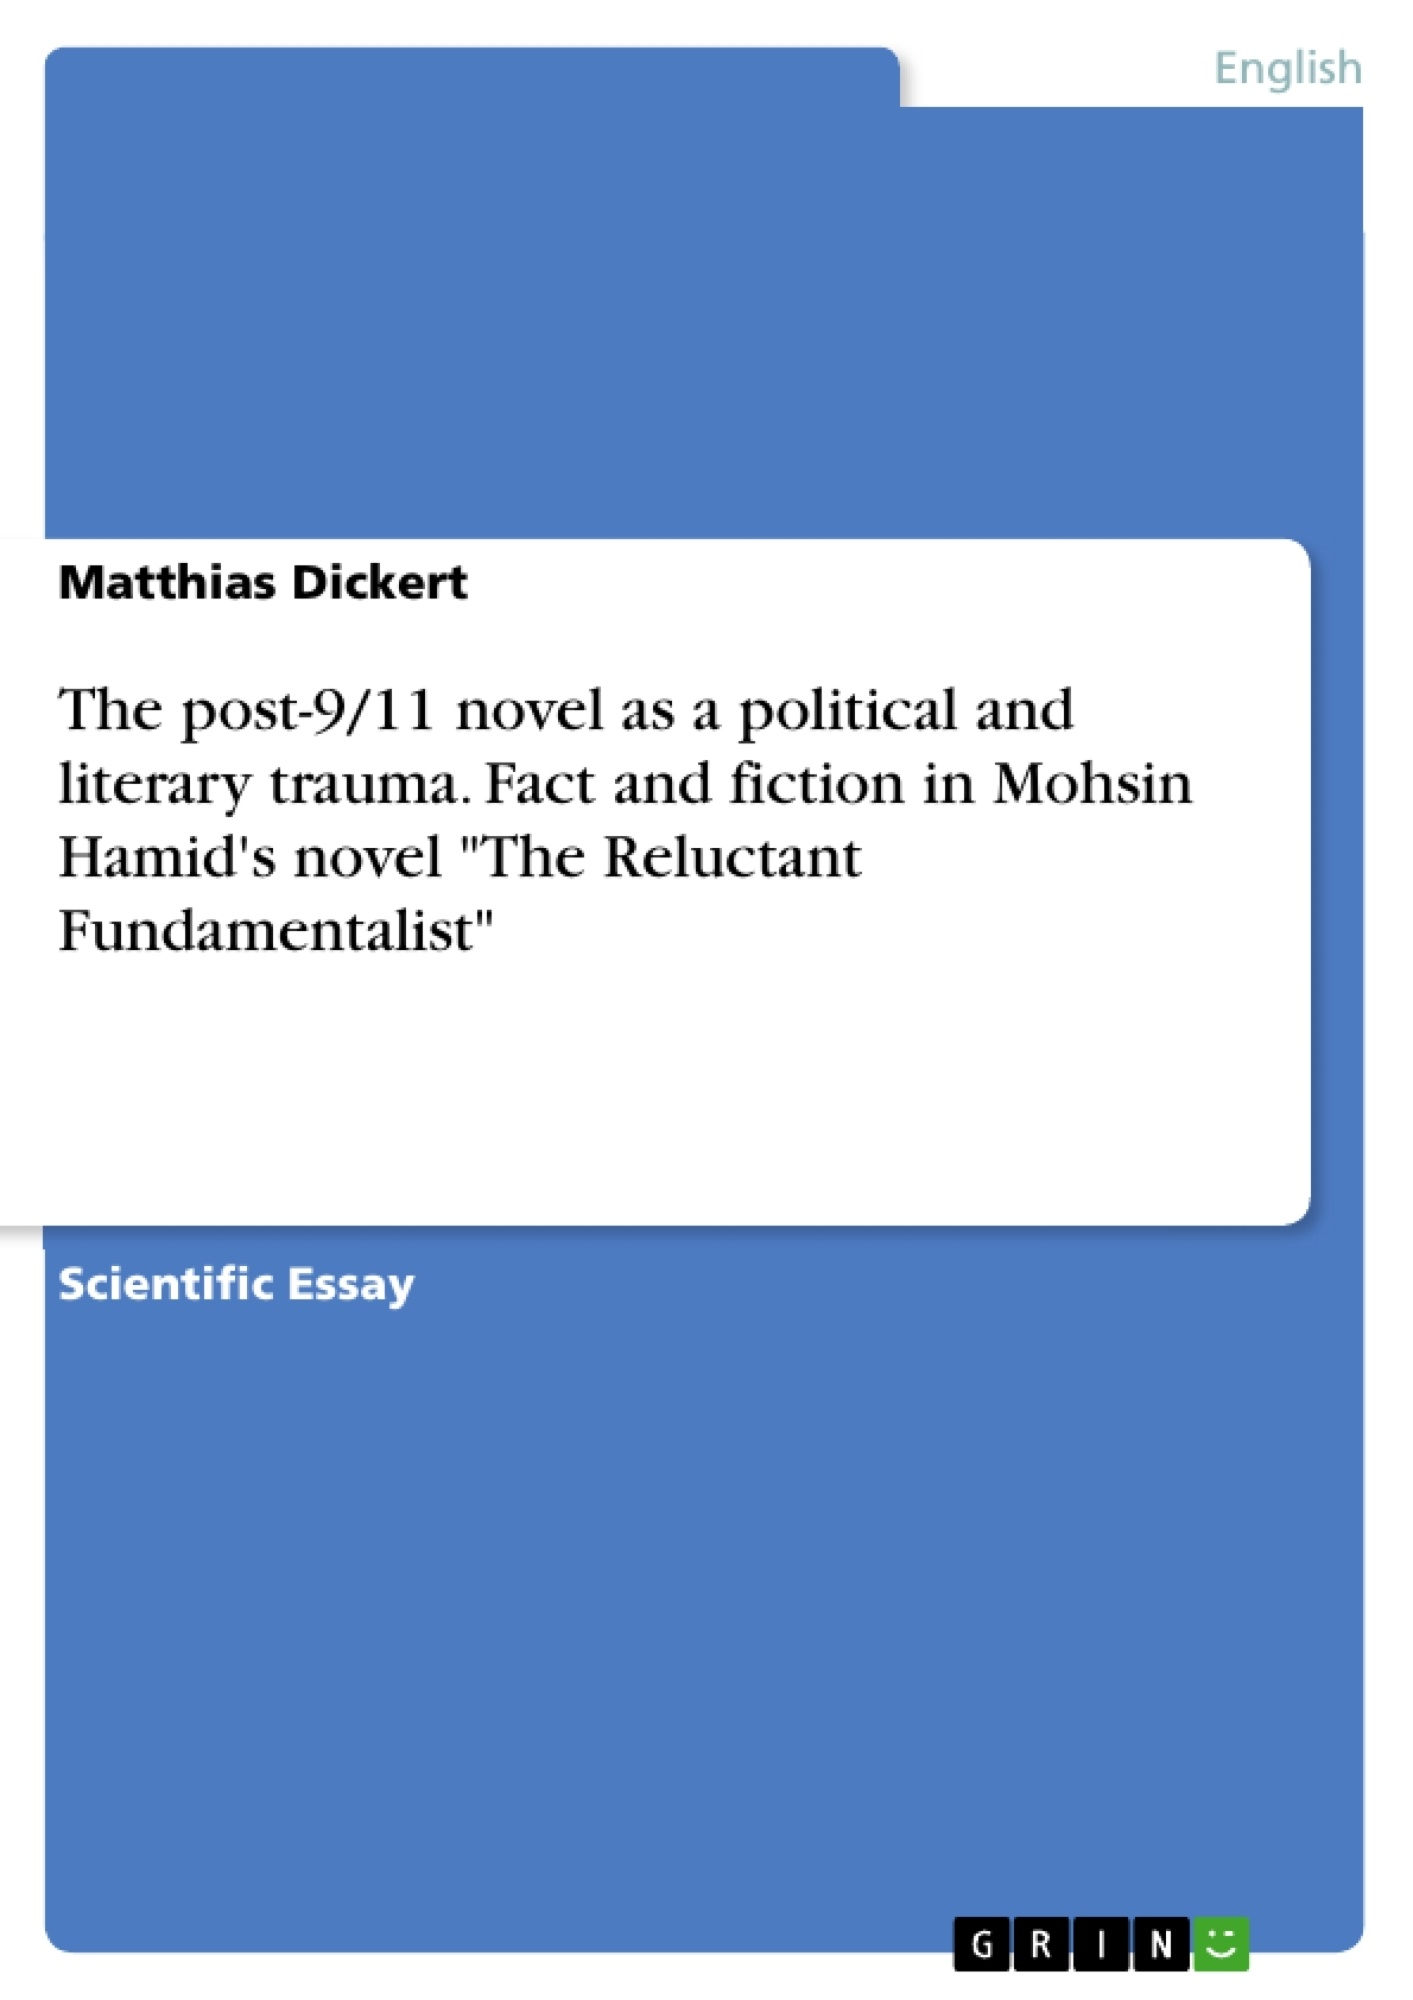 """Title: The post-9/11 novel as a political and literary trauma. Fact and fiction in Mohsin Hamid's novel """"The Reluctant Fundamentalist"""""""